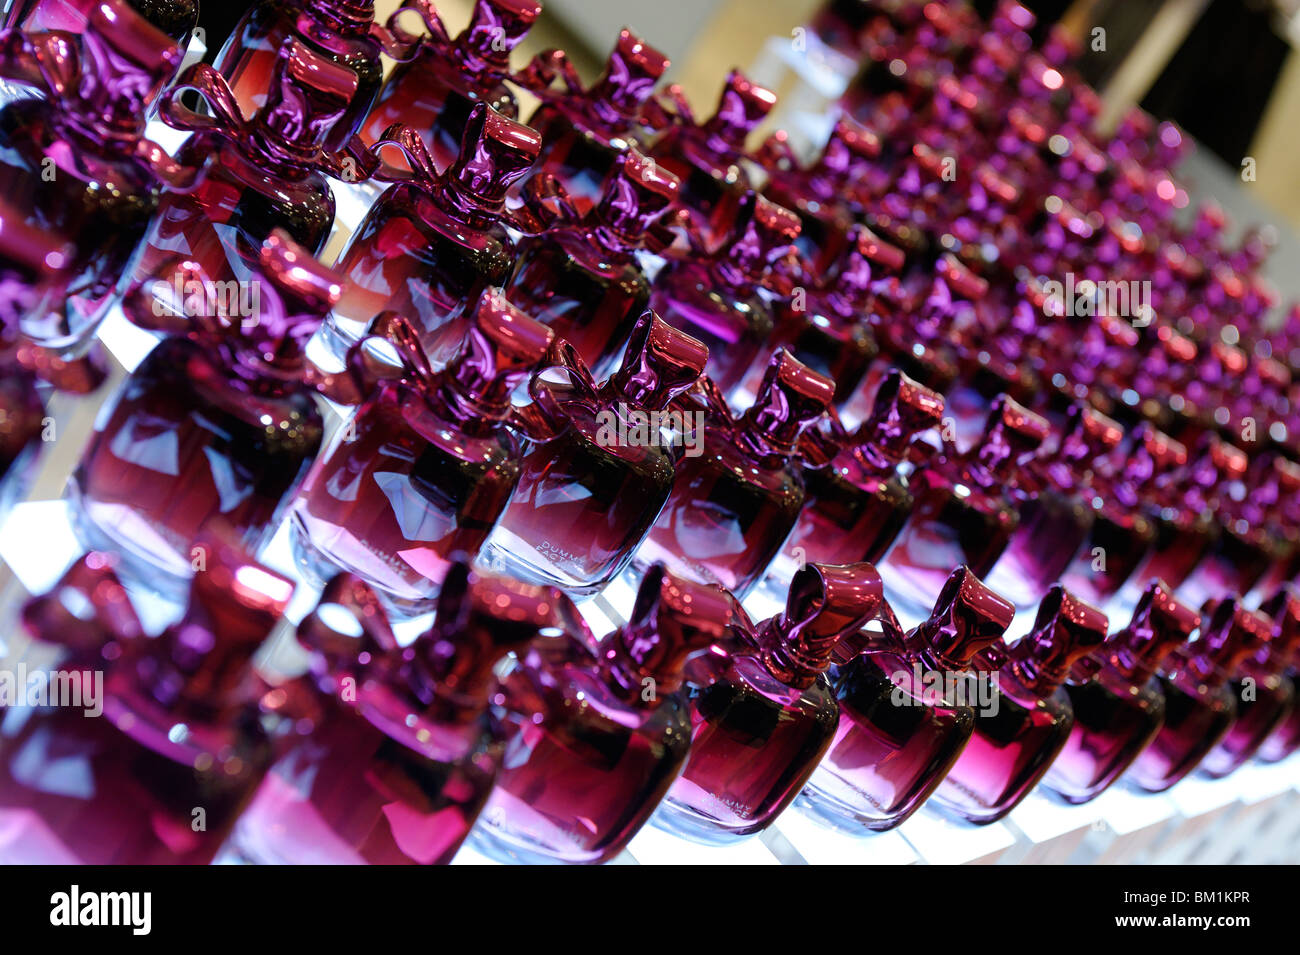 Purple perfume bottles in a row Stock Photo